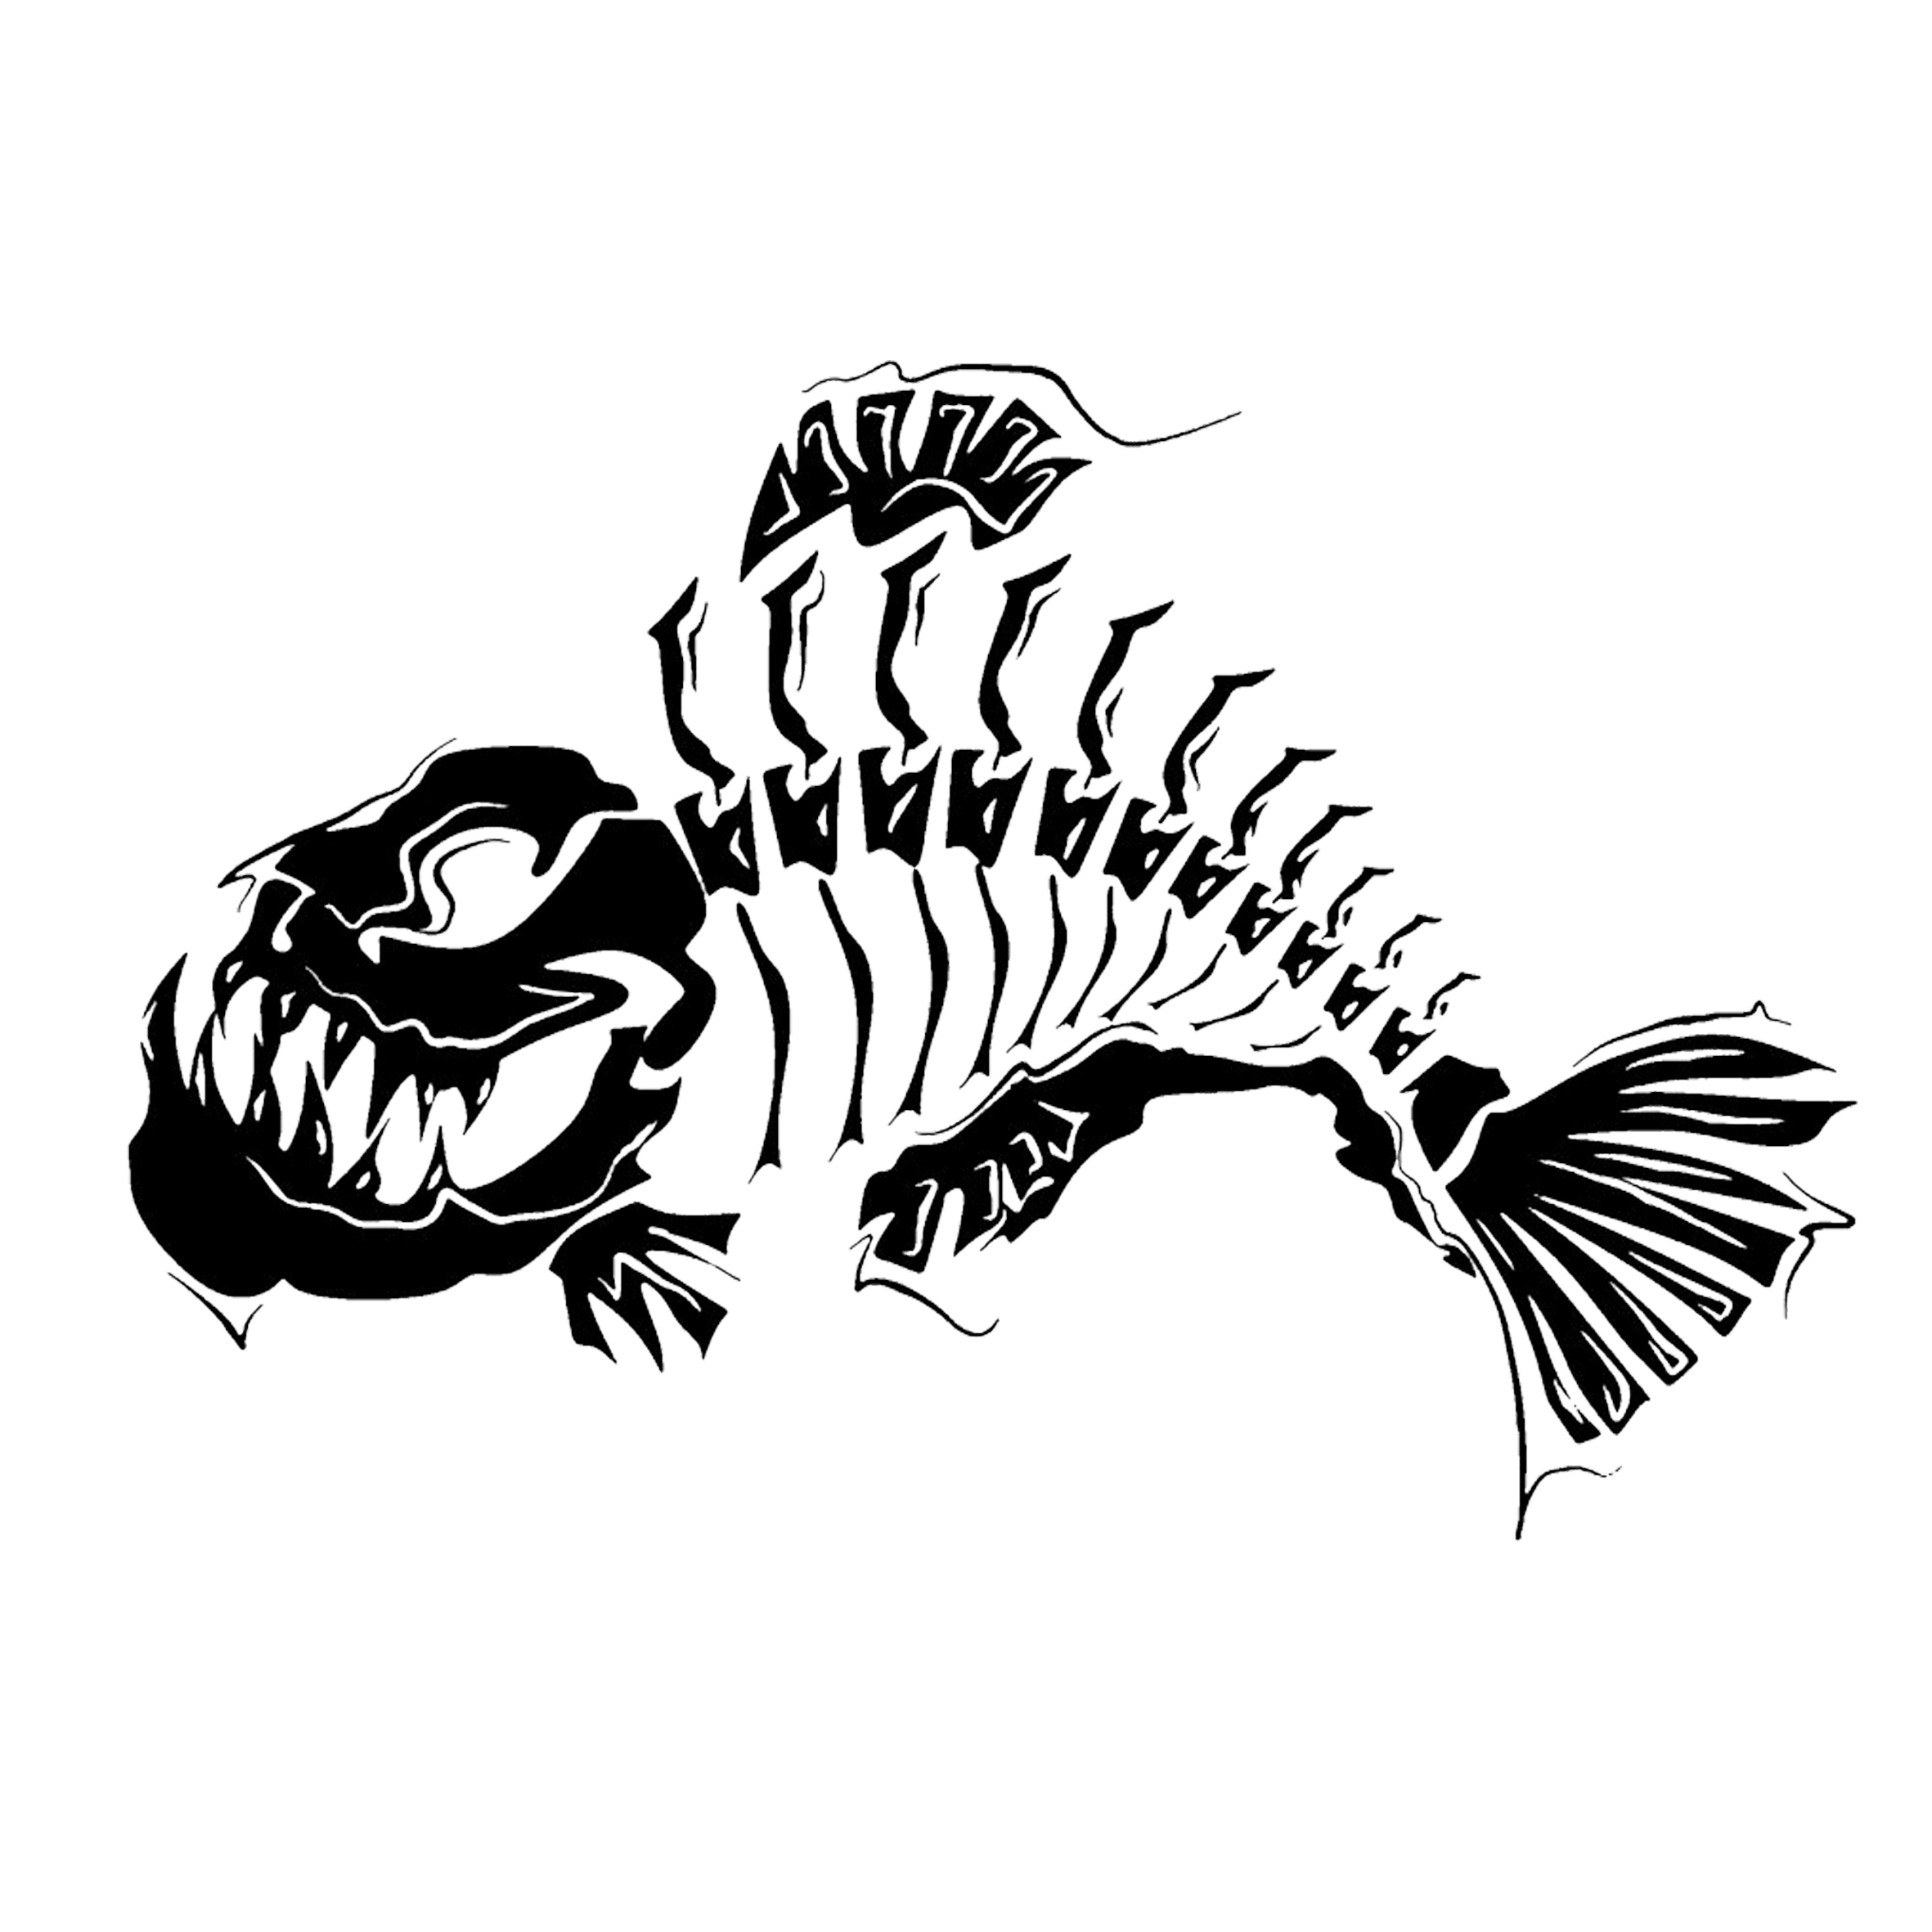 Fish skeleton clipart jpg library download Tattoo Skeleton Fish bone Clip art - fish bone 2362*2362 transprent ... jpg library download